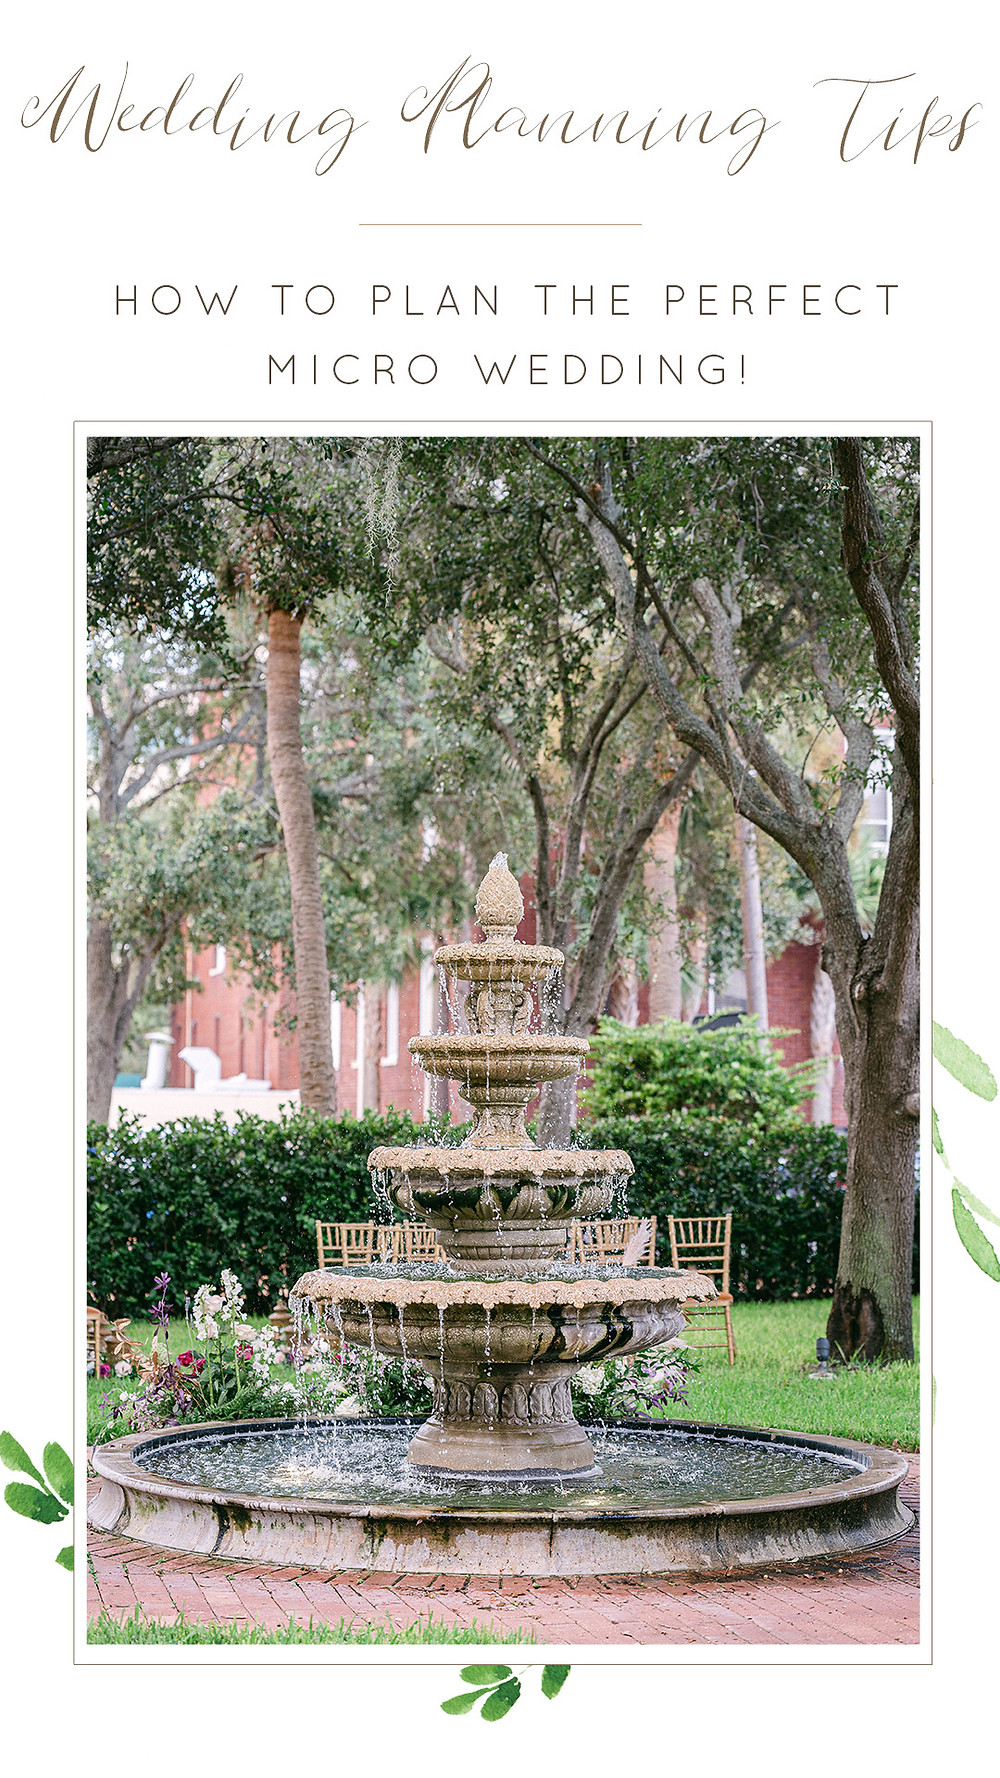 Micro wedding planning tips. St. Pete wedding photographer Nina Bashaw